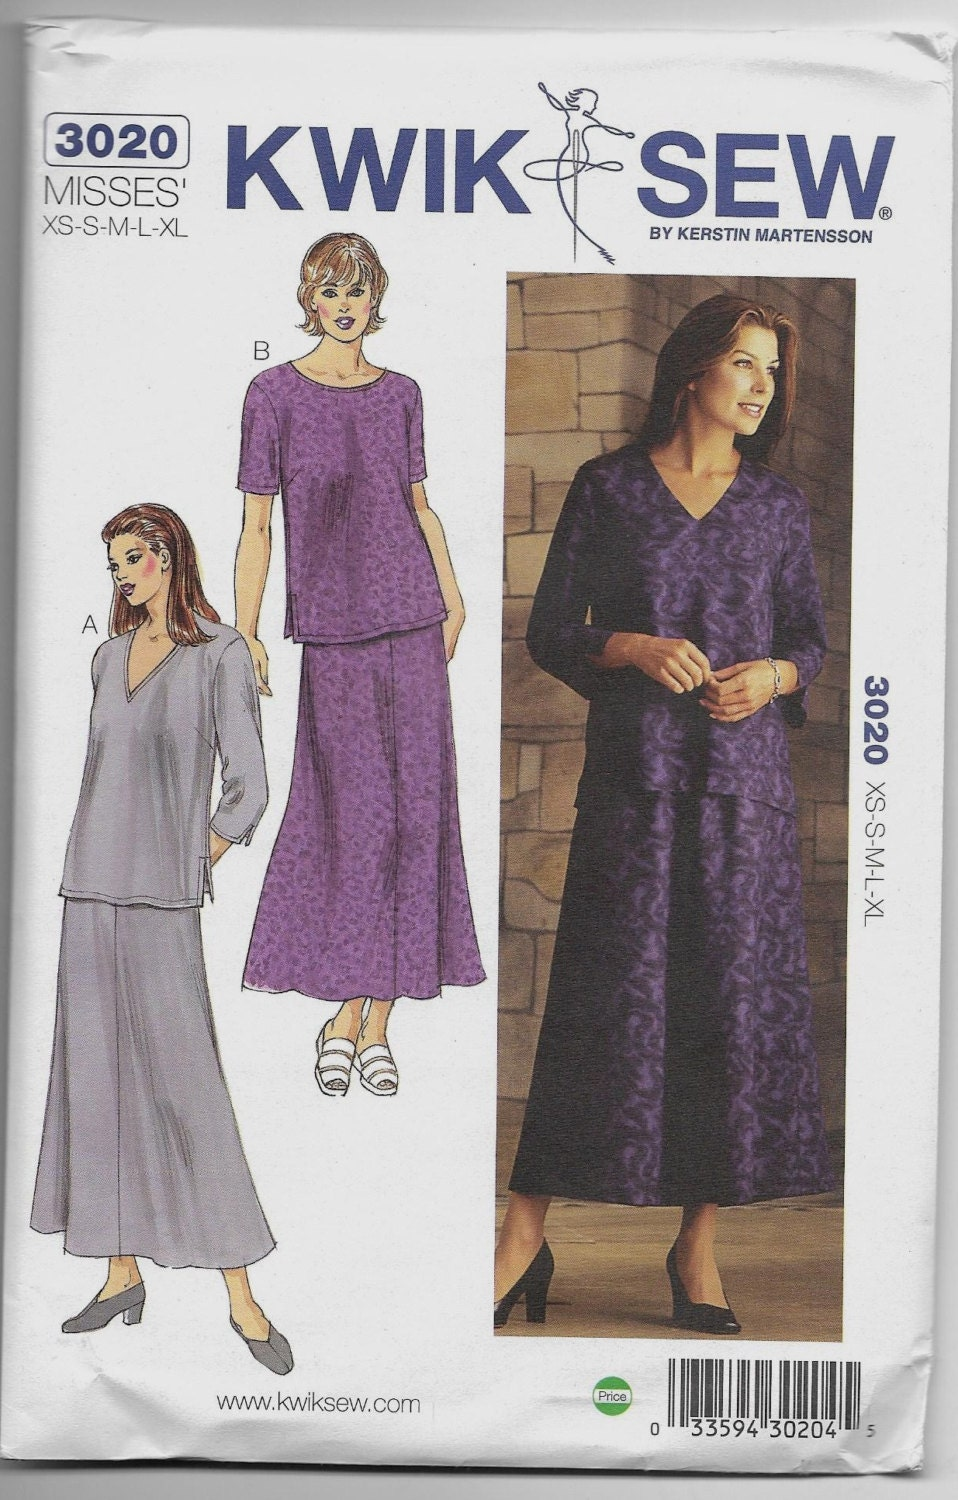 3020 kwik sew tops and skirt sewing pattern sizes xs s m l xl from sold by jlgssewingpatterns jeuxipadfo Gallery